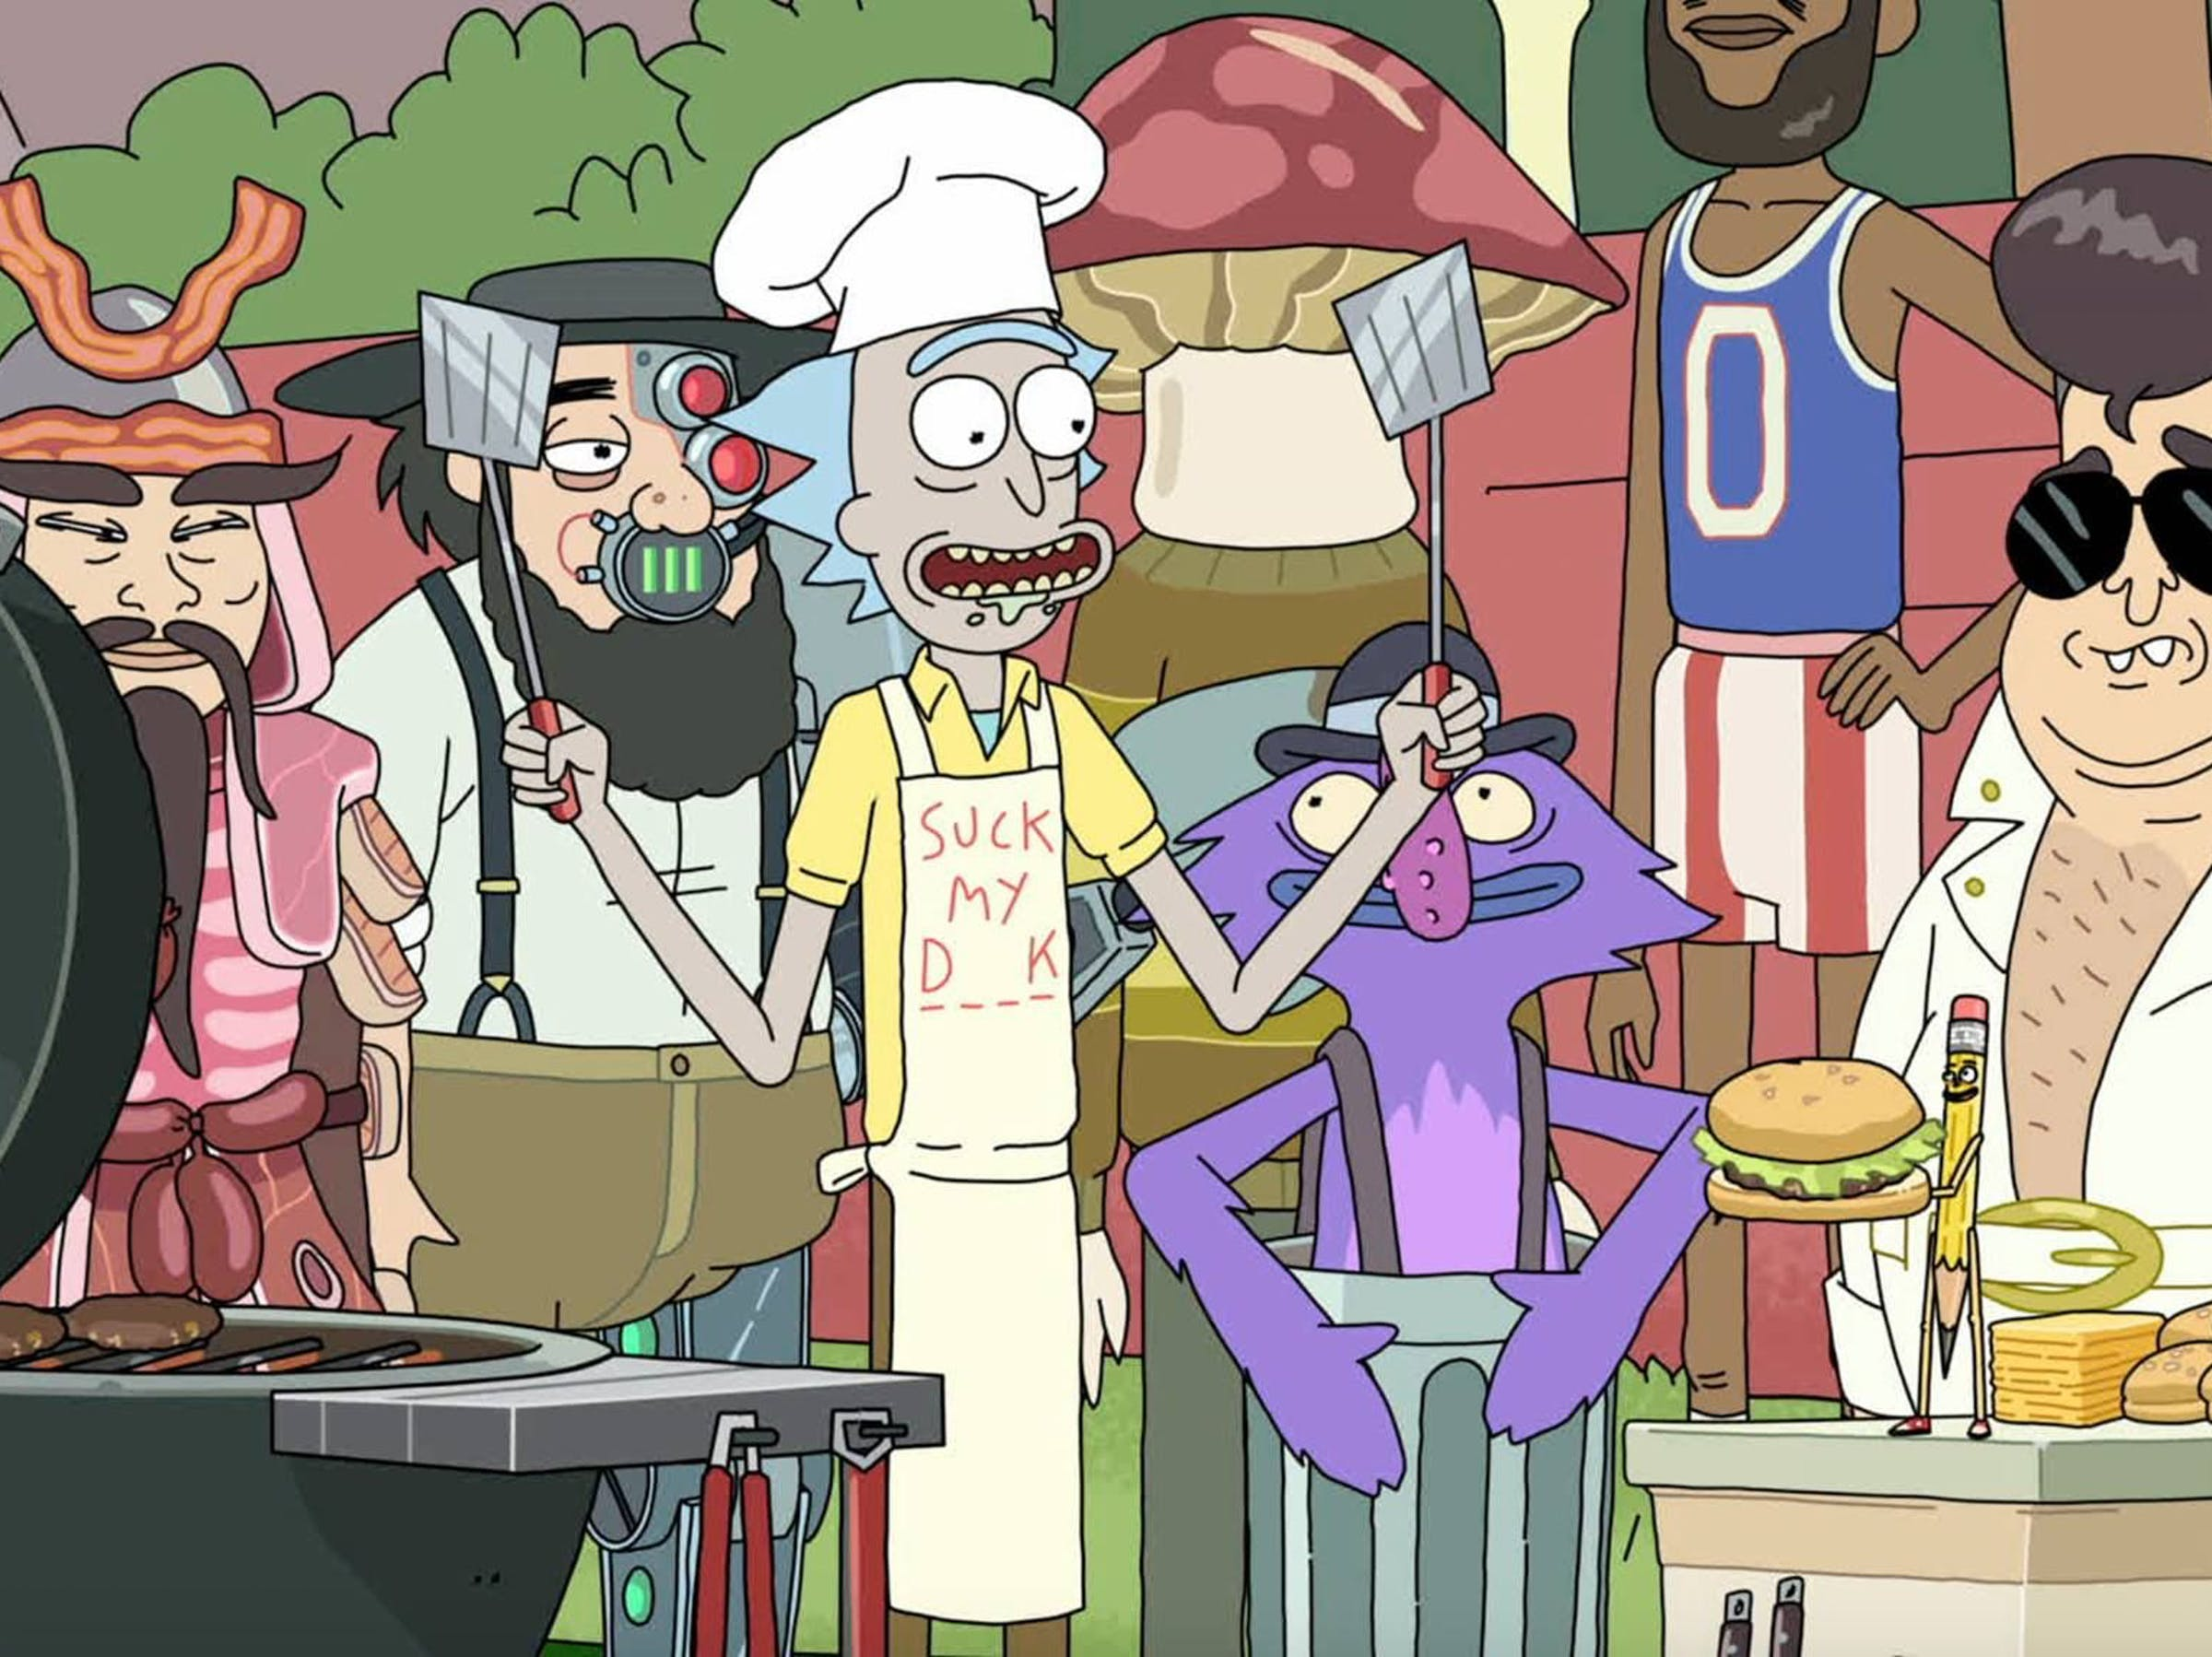 'Rick and Morty' has so many guest stars each season.